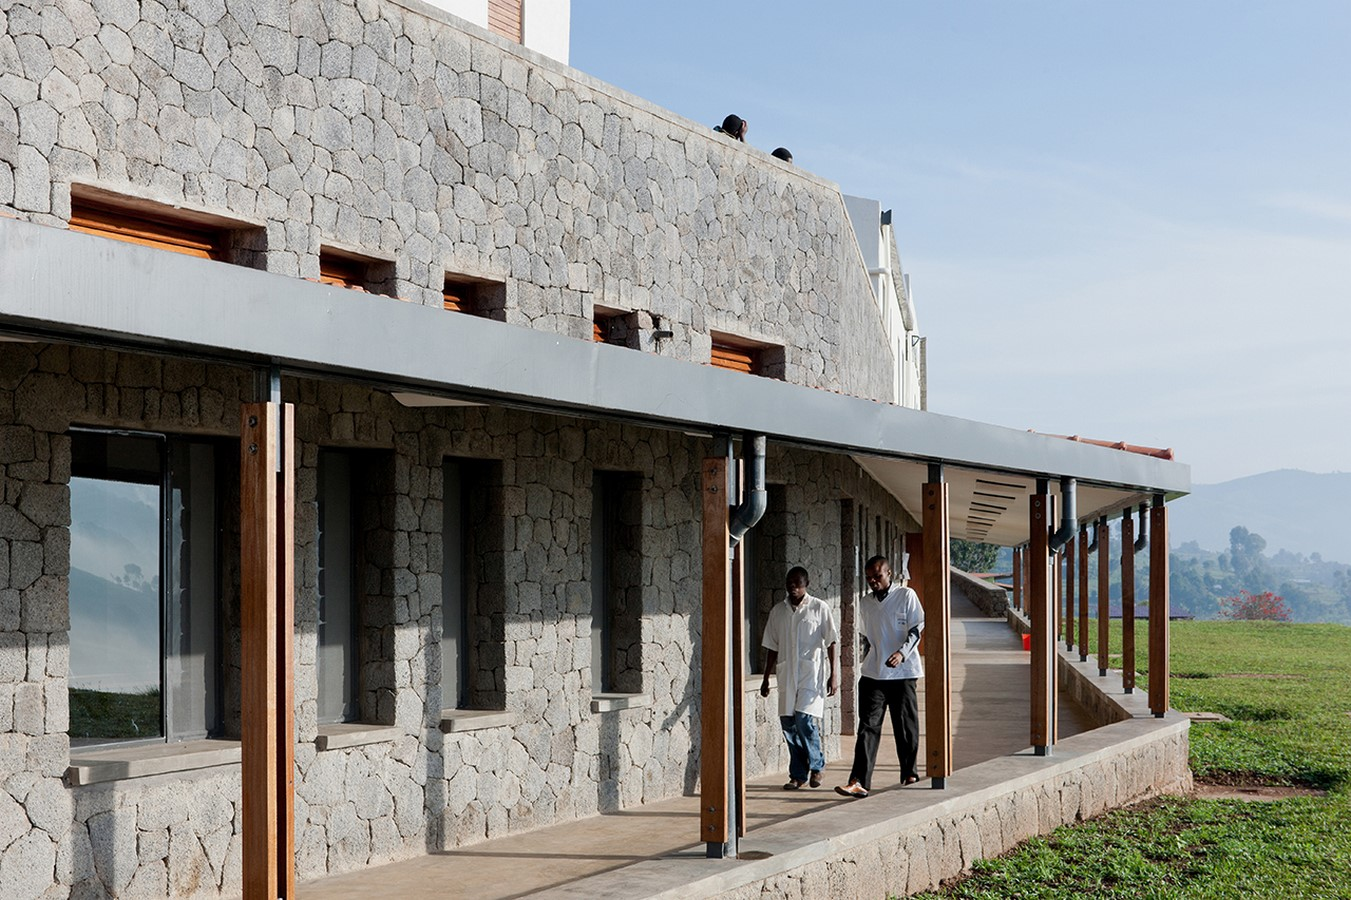 Can architecture and design fill the inequality gap in our society? - Sheet4